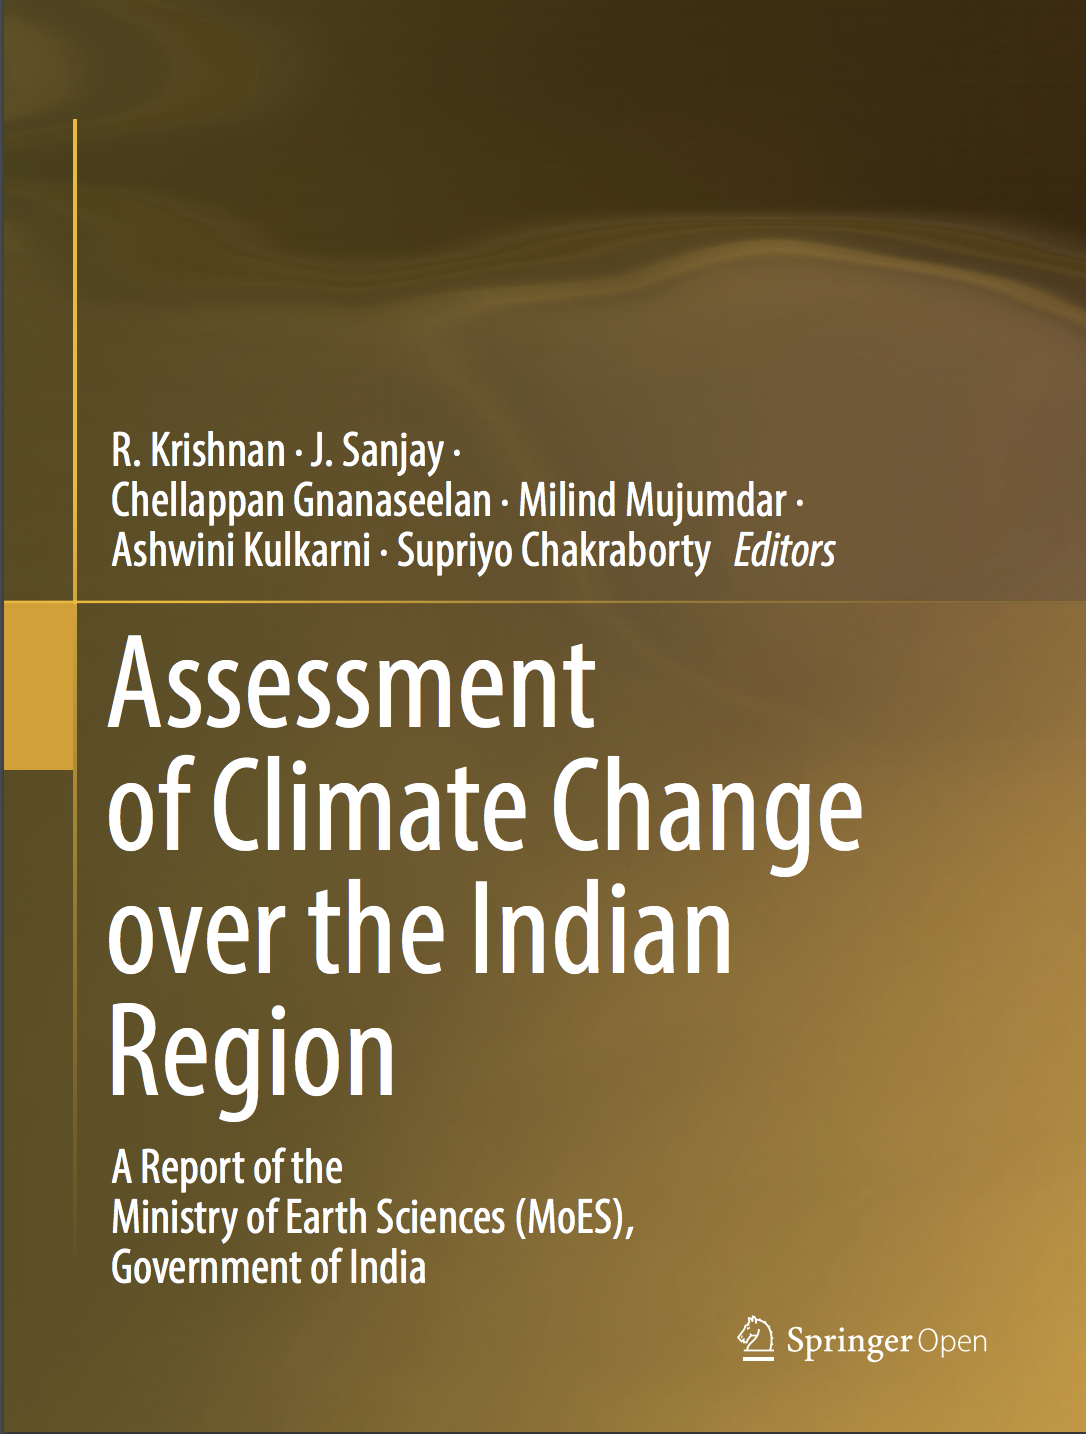 Assessment of climate change over the Indian region